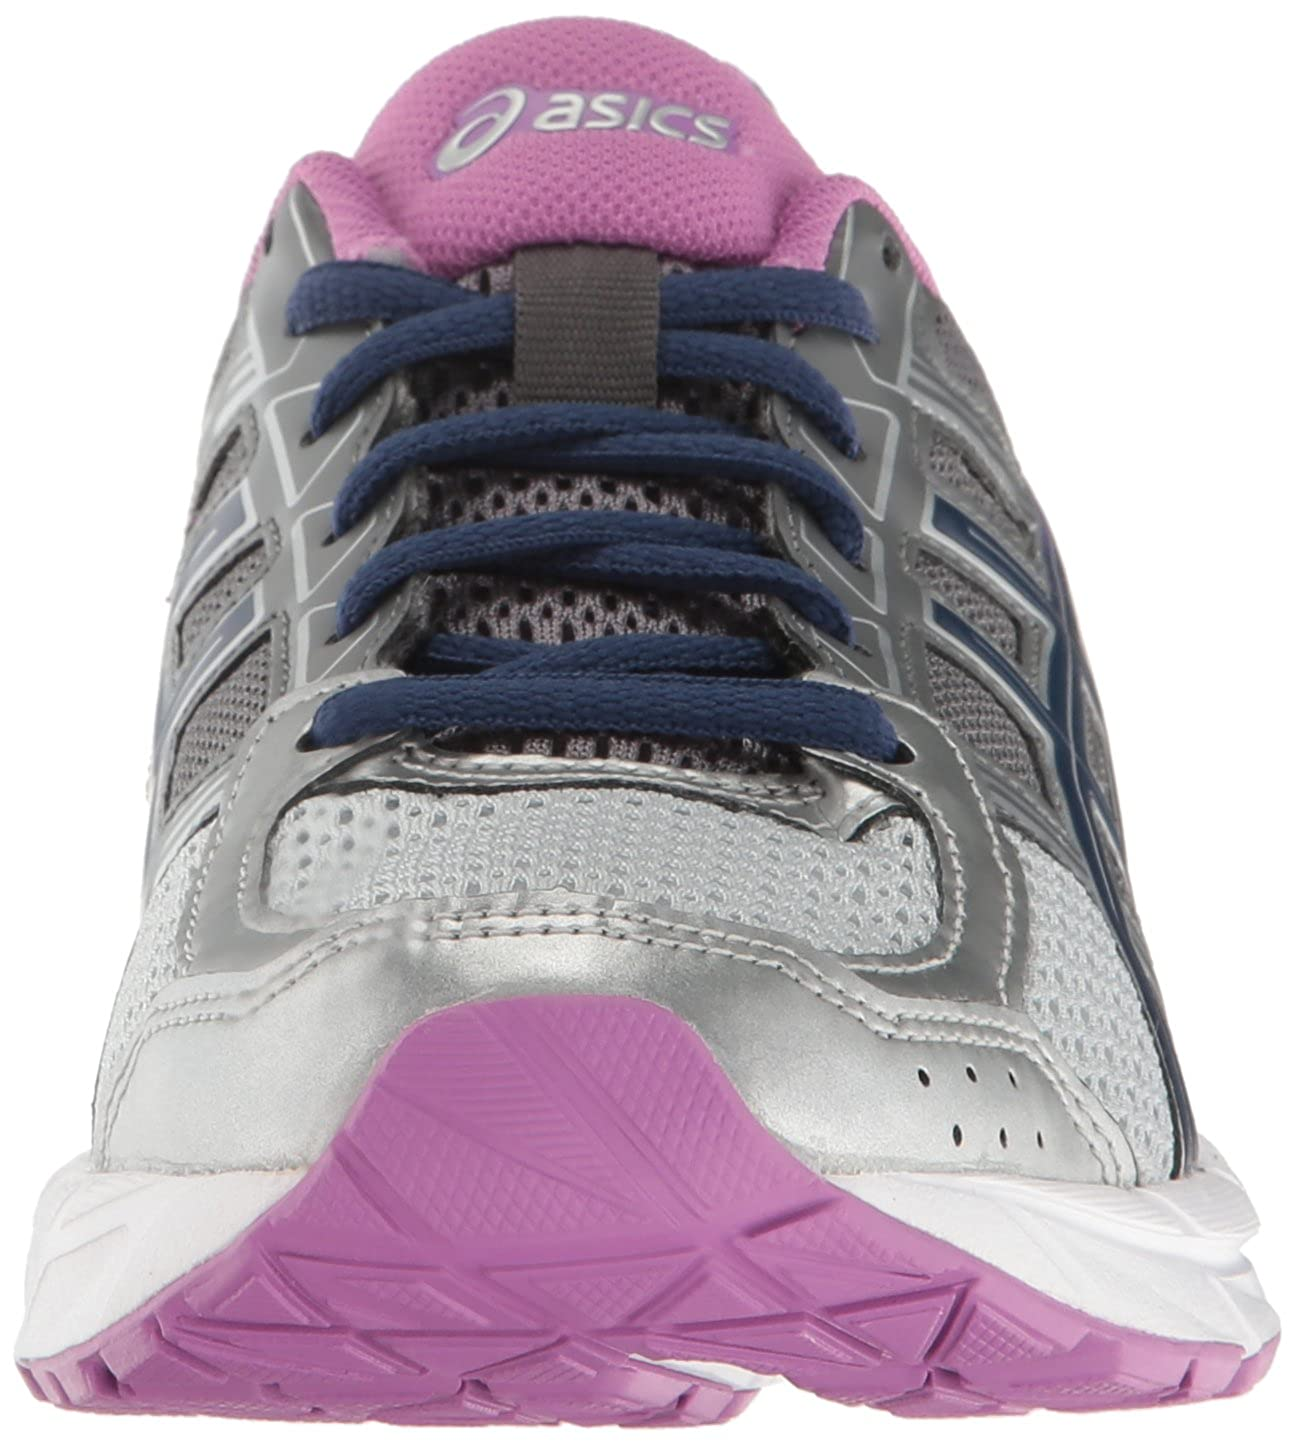 ASICS Gel-Contend 4 Women s Running Shoe